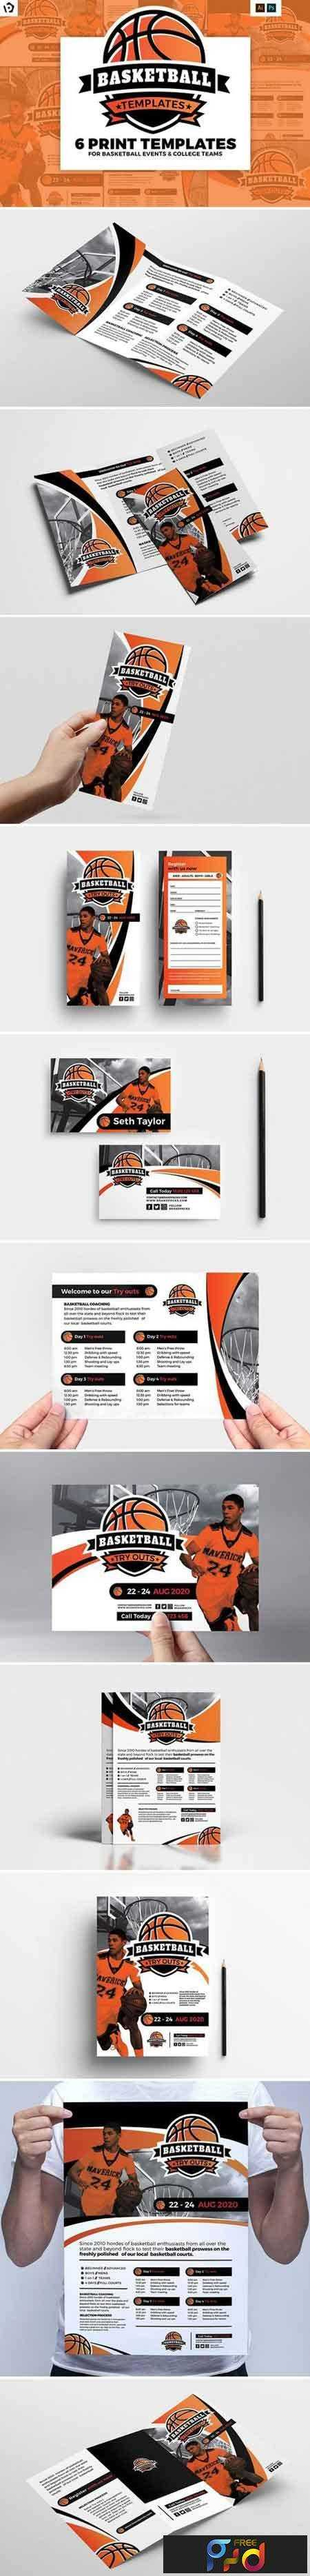 1804228 Basketball Templates Pack 2225291 1